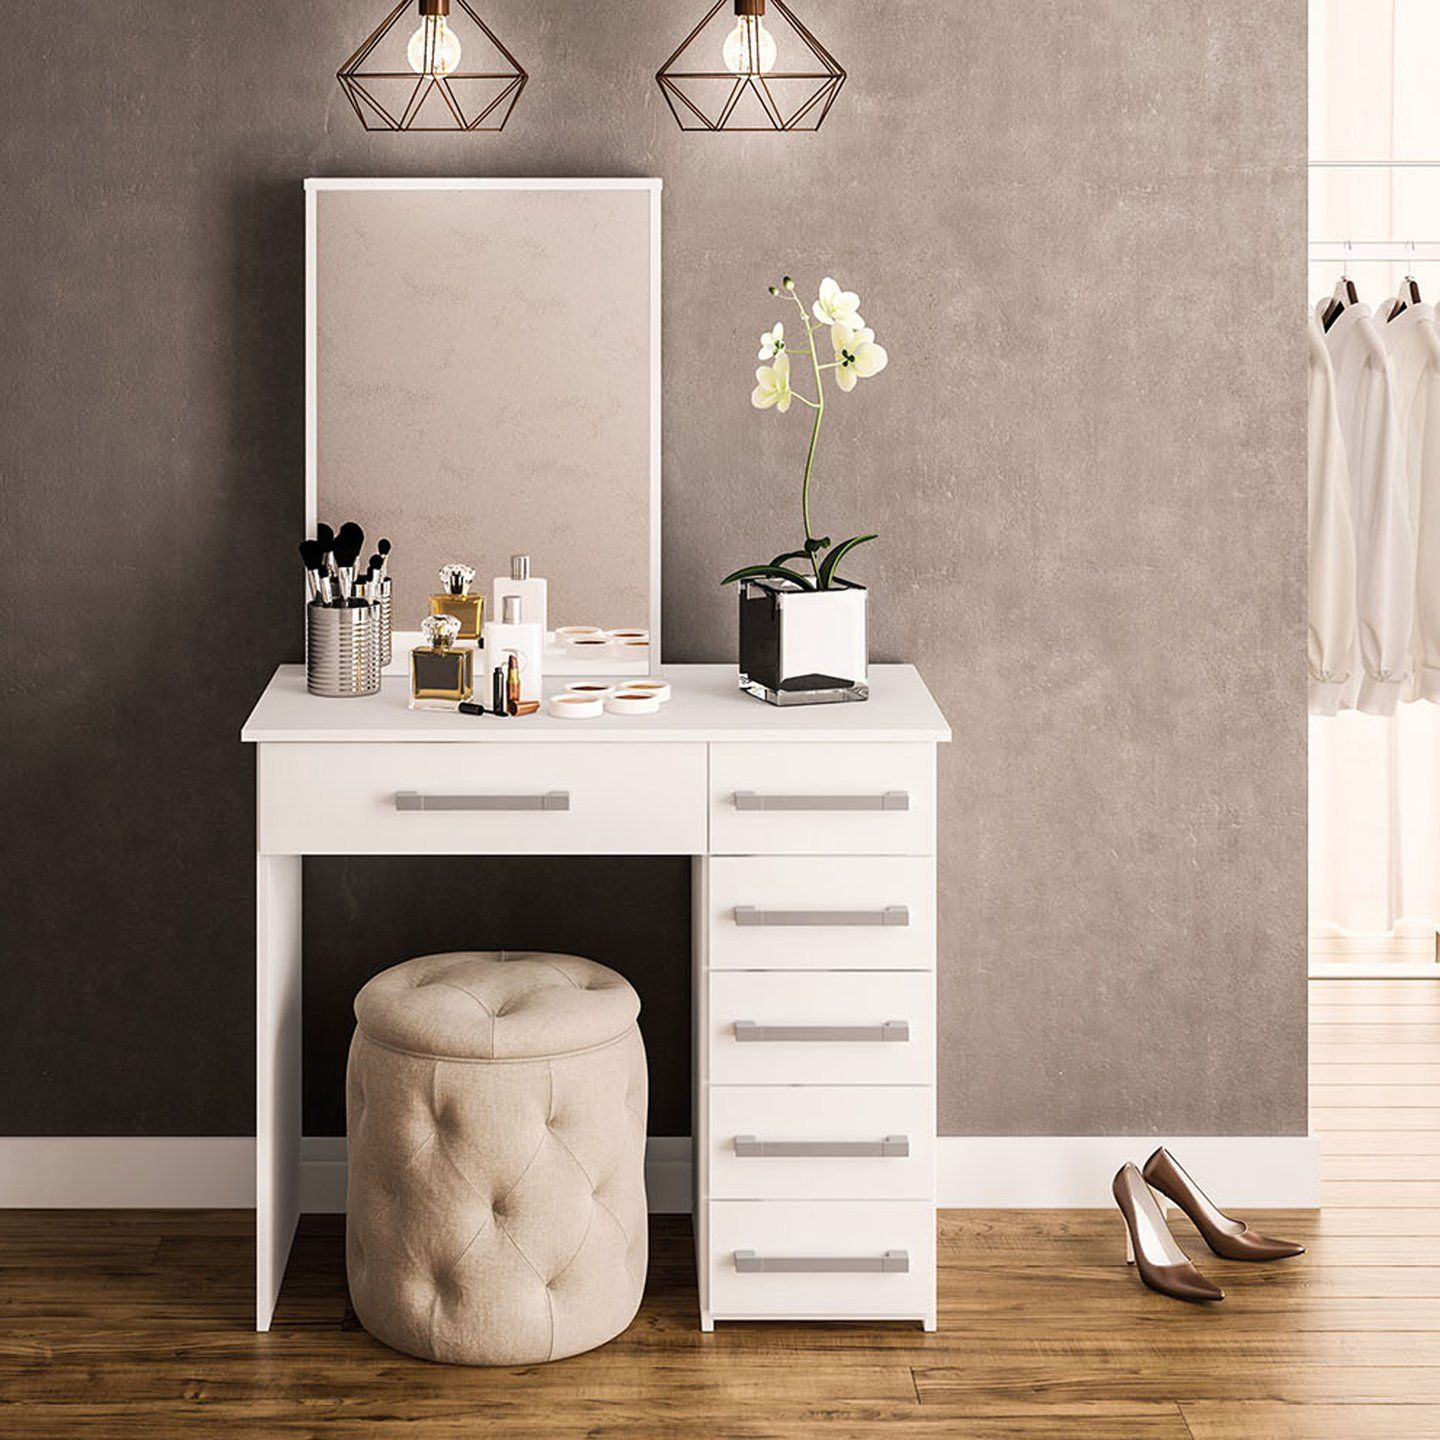 Boahaus Sofia Modern Vanity Table With Mirror And 6 Drawers White Finish Walmart Com In 2020 Modern Vanity Table White Dressing Tables Vanity Table